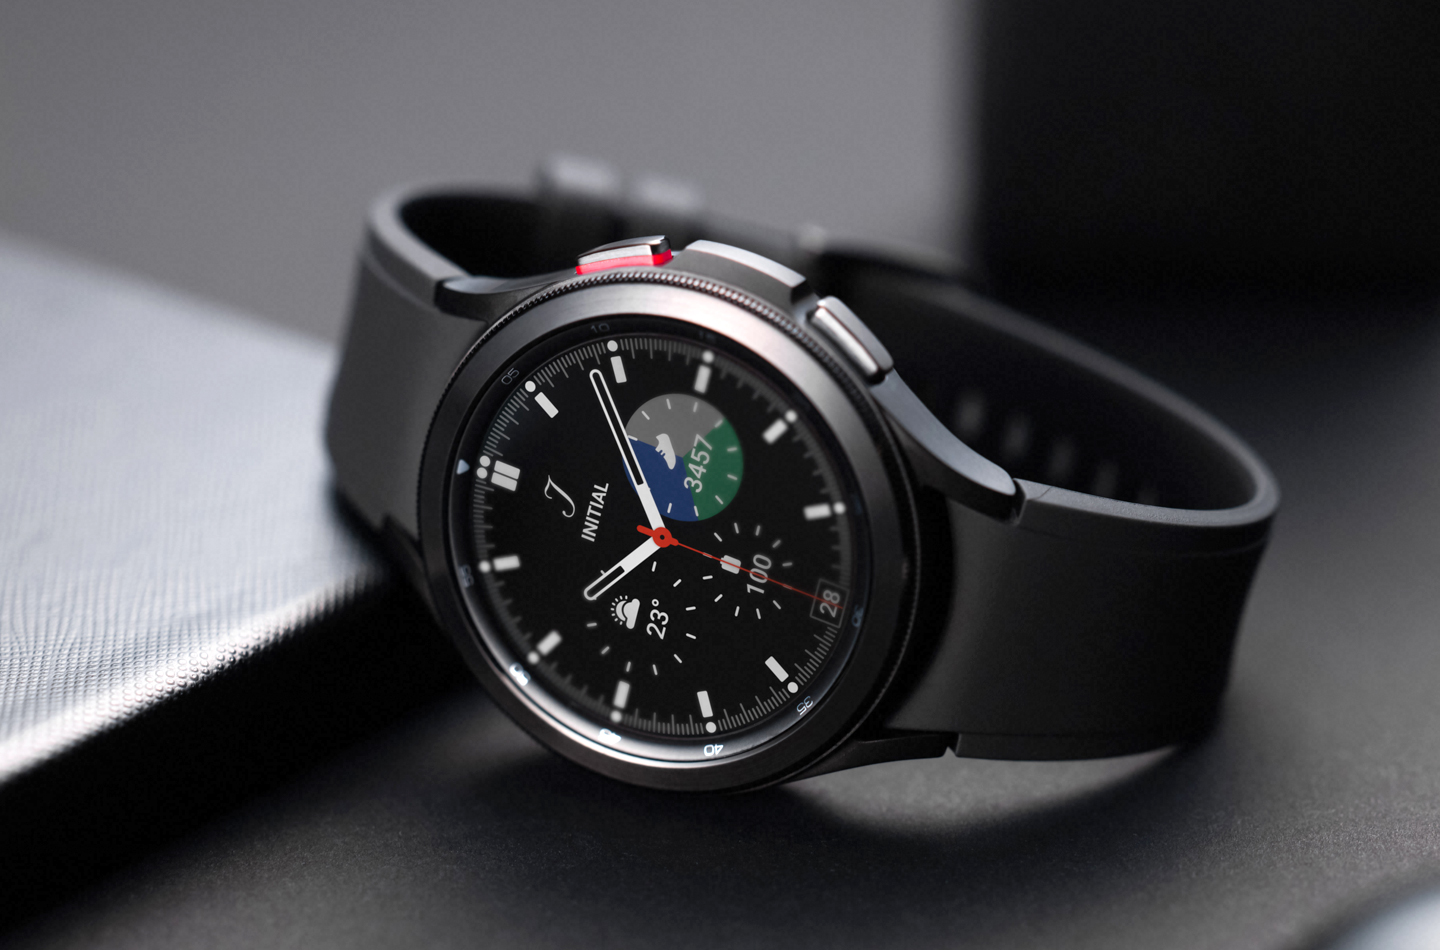 Samsung Watch 4 review